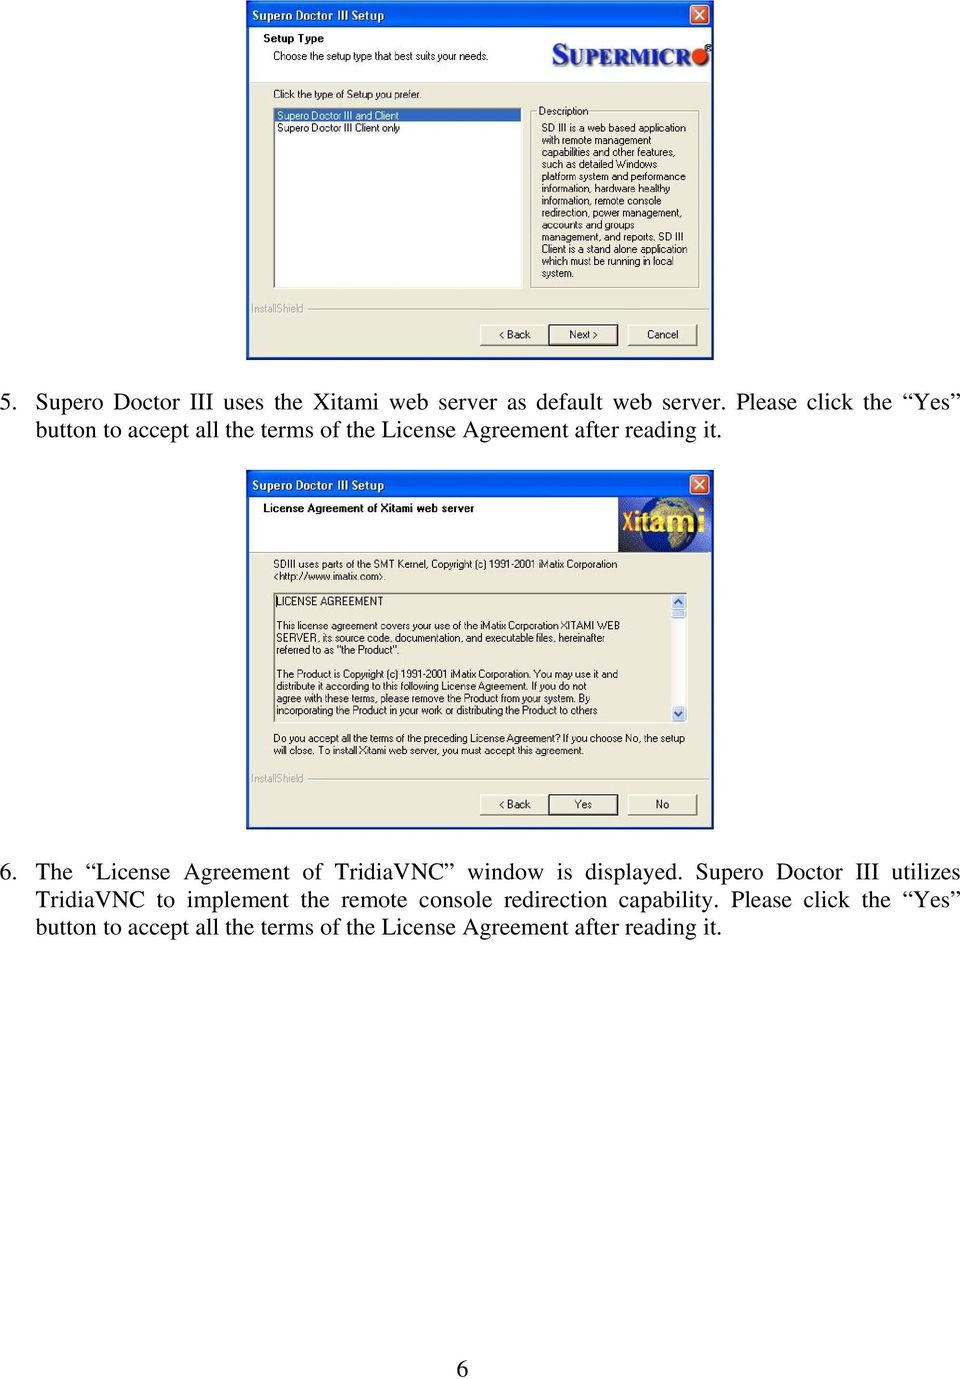 The License Agreement of TridiaVNC window is displayed.